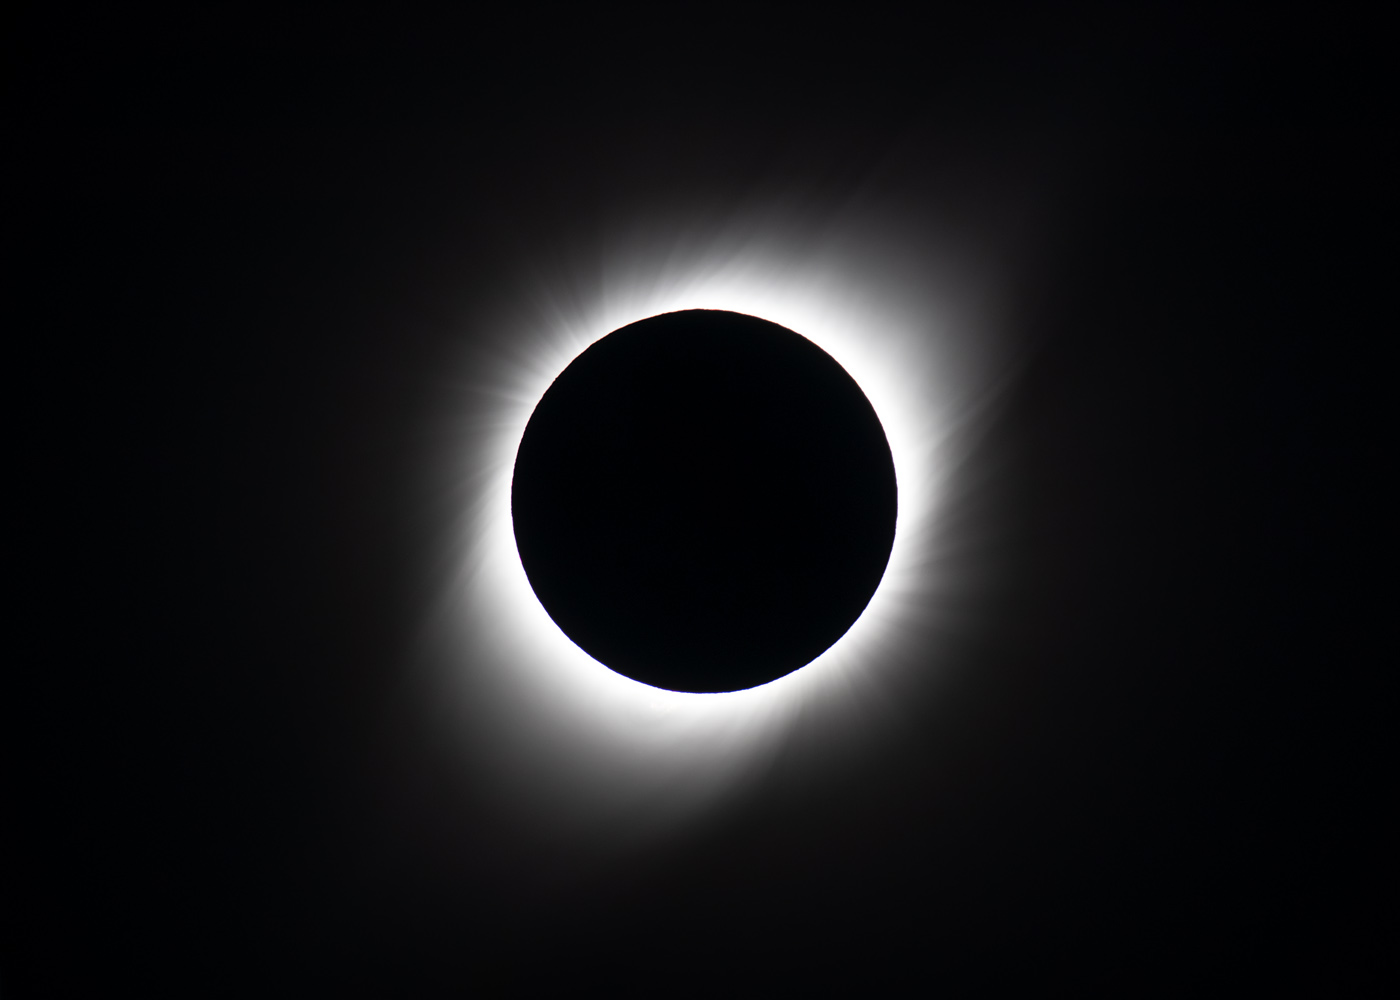 Black Hole Sun: Shooting the Total Solar Eclipse in